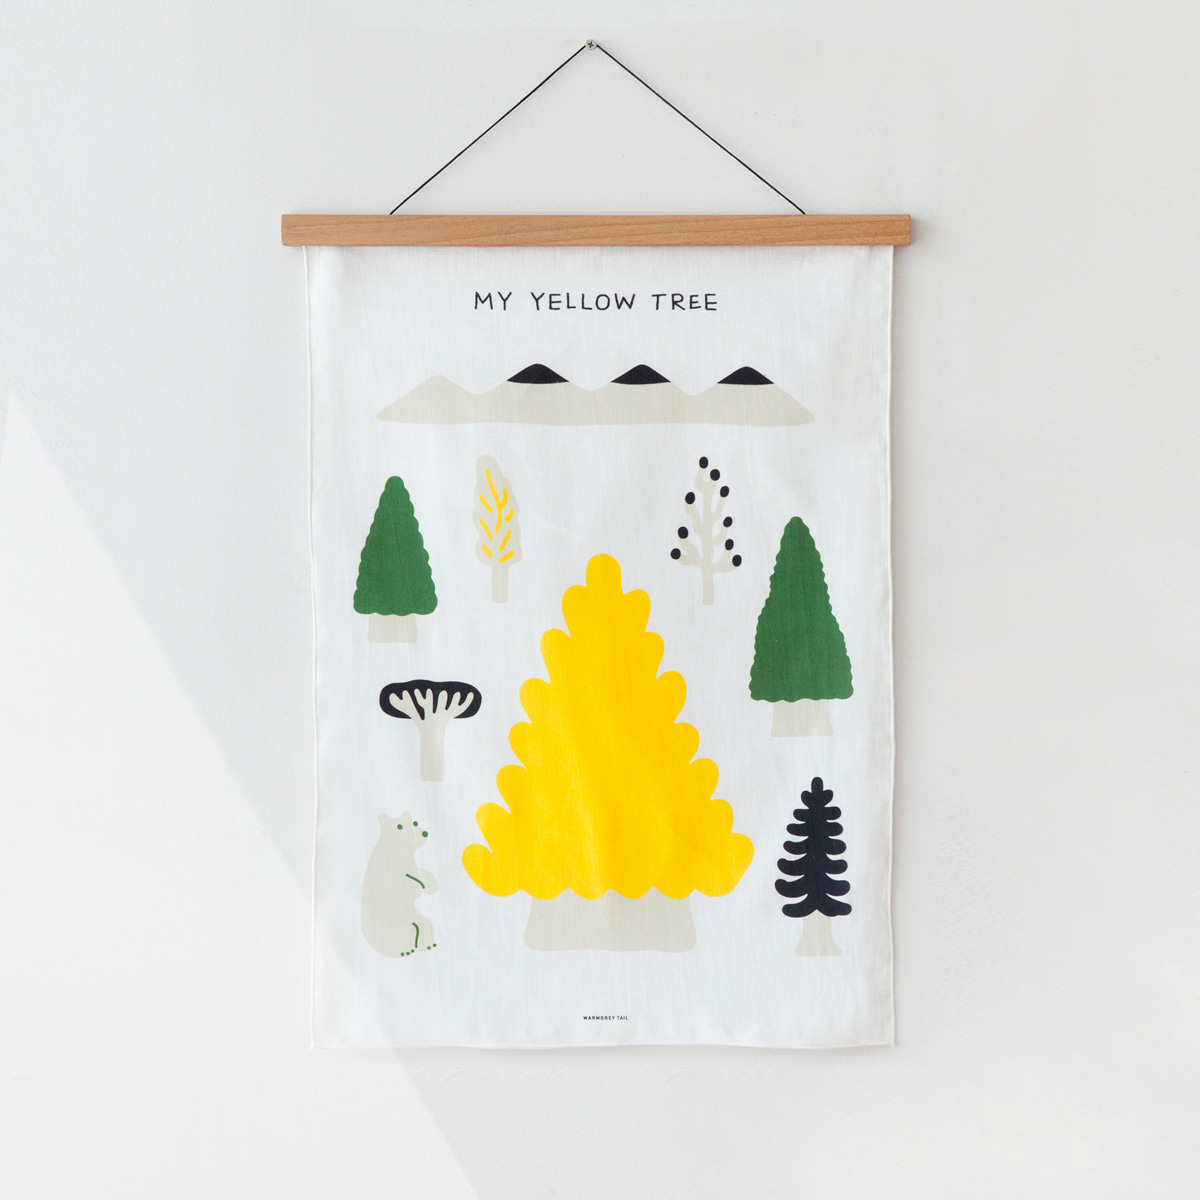 MY YELLOW TREE - BLACK FABRIC POSTER